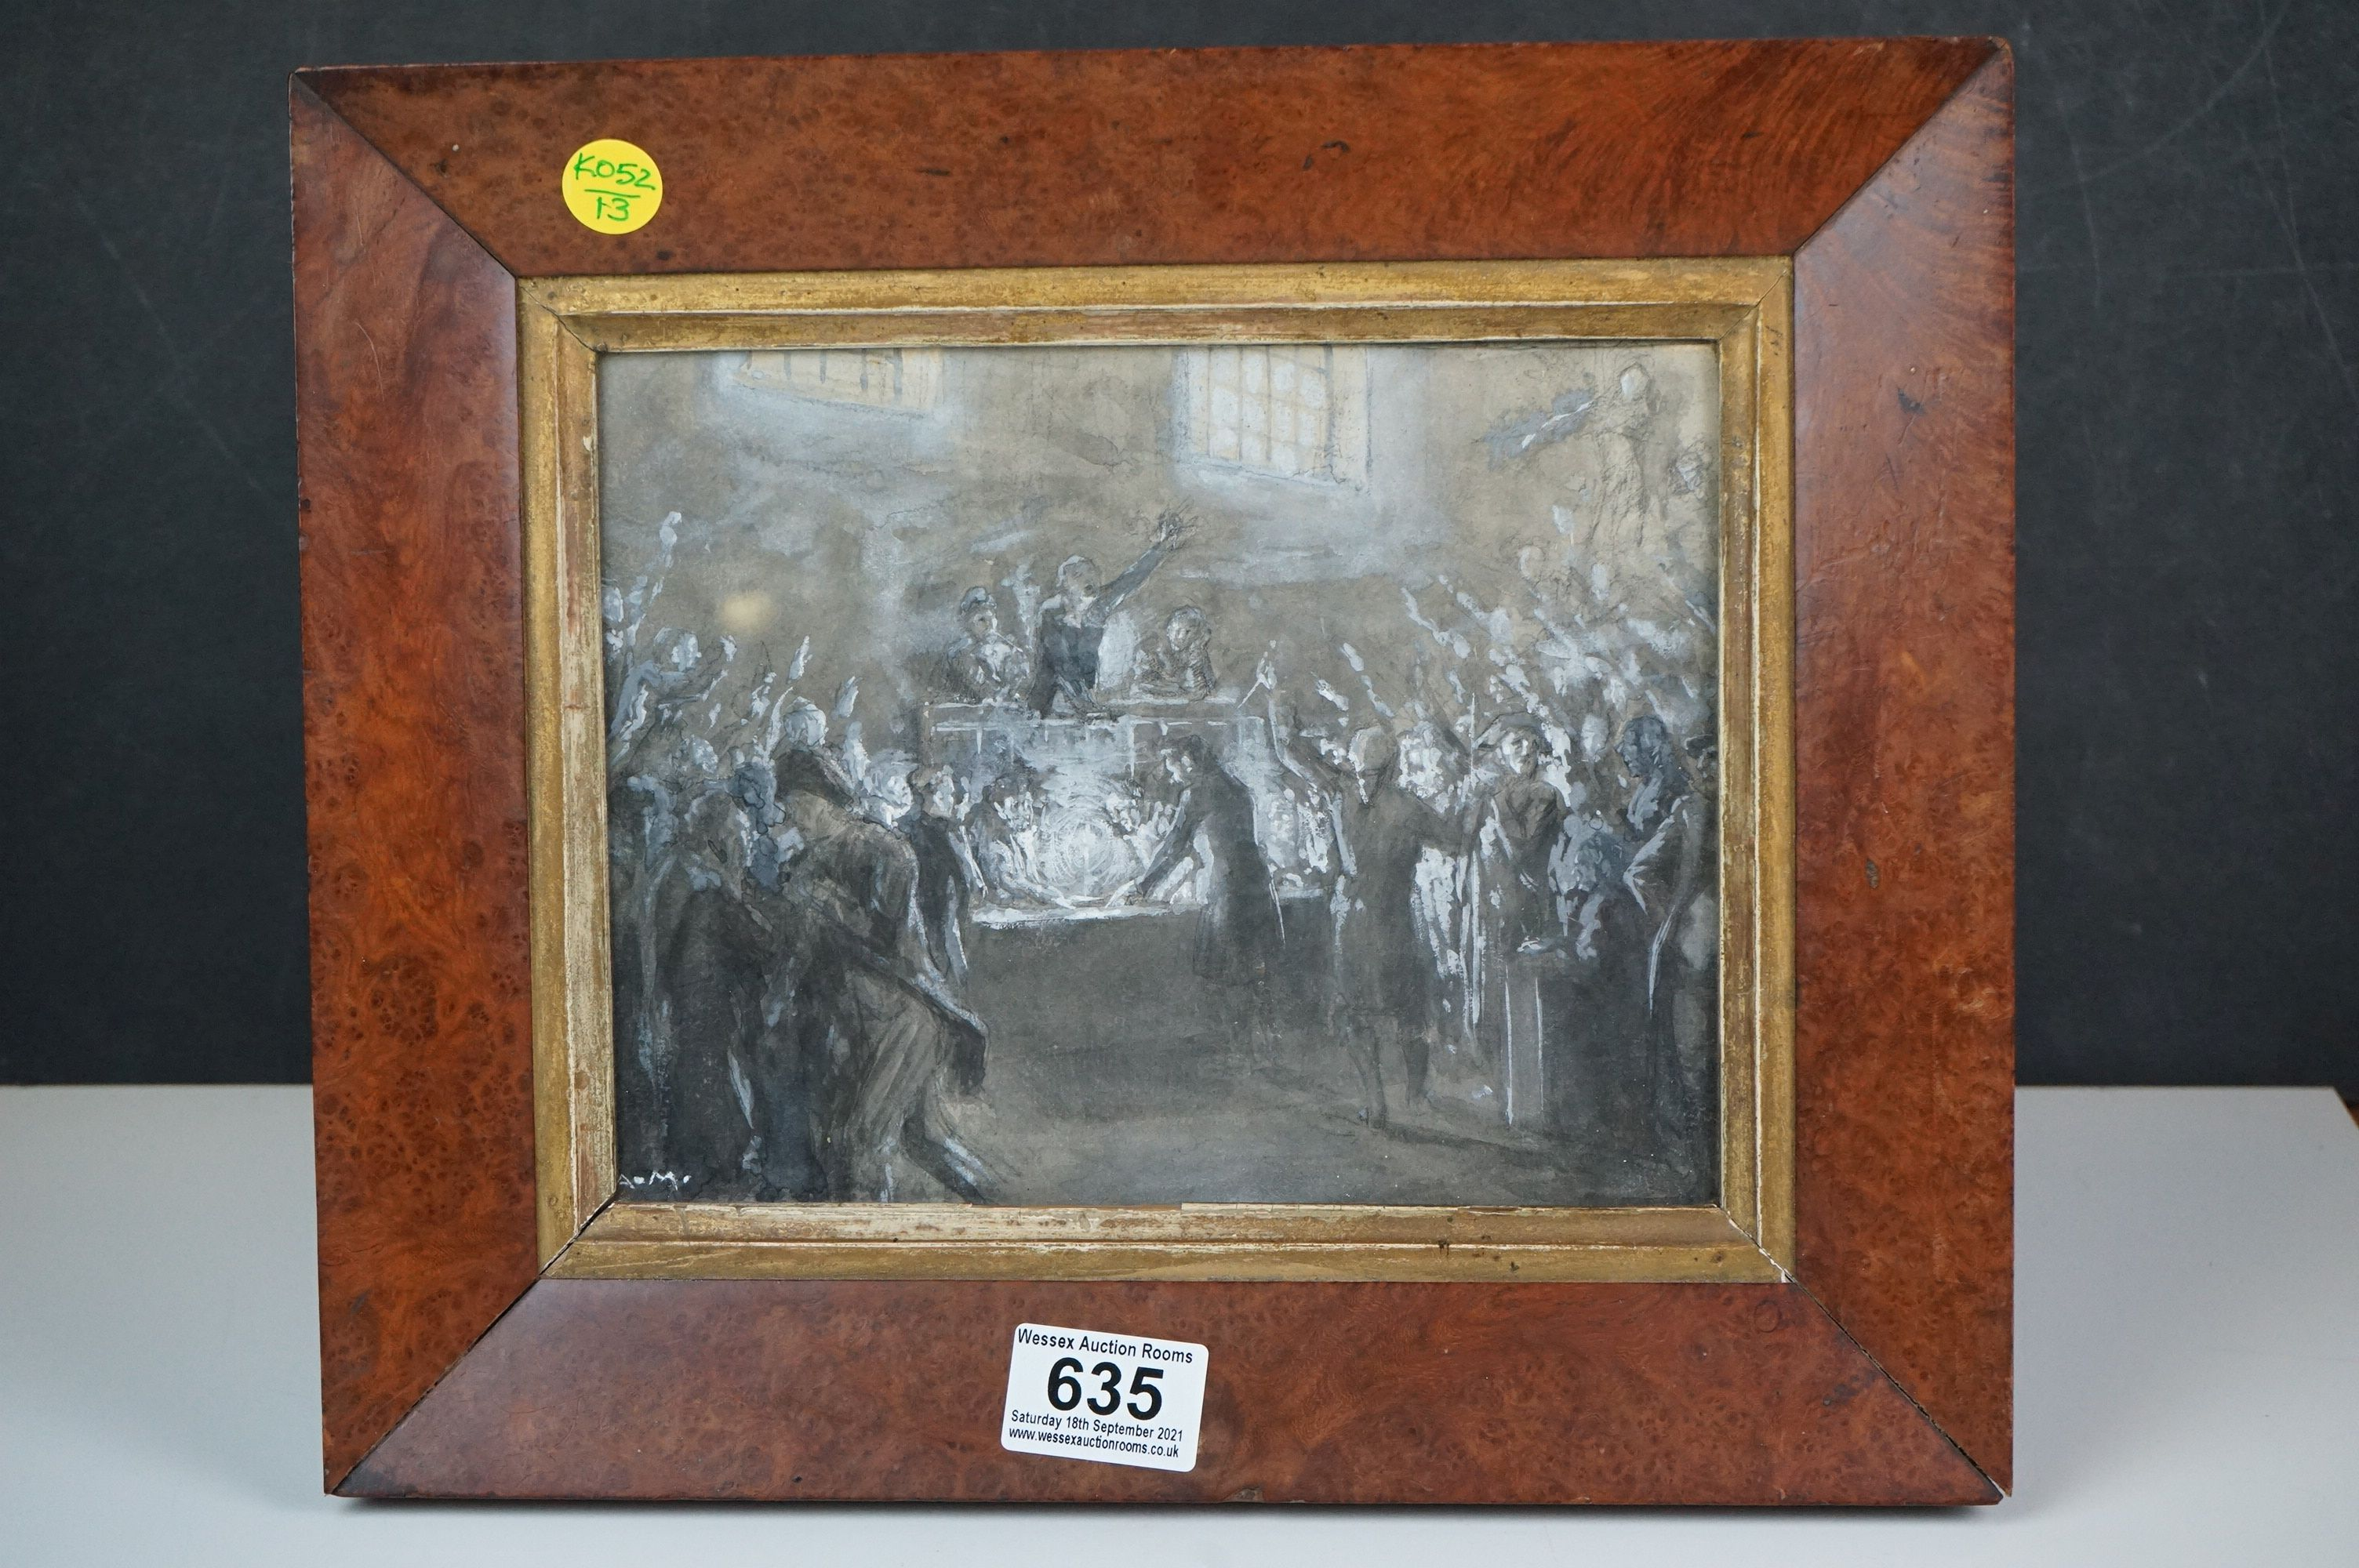 Watercolour of 19th century parliamentary figures casting a vote, possibly French